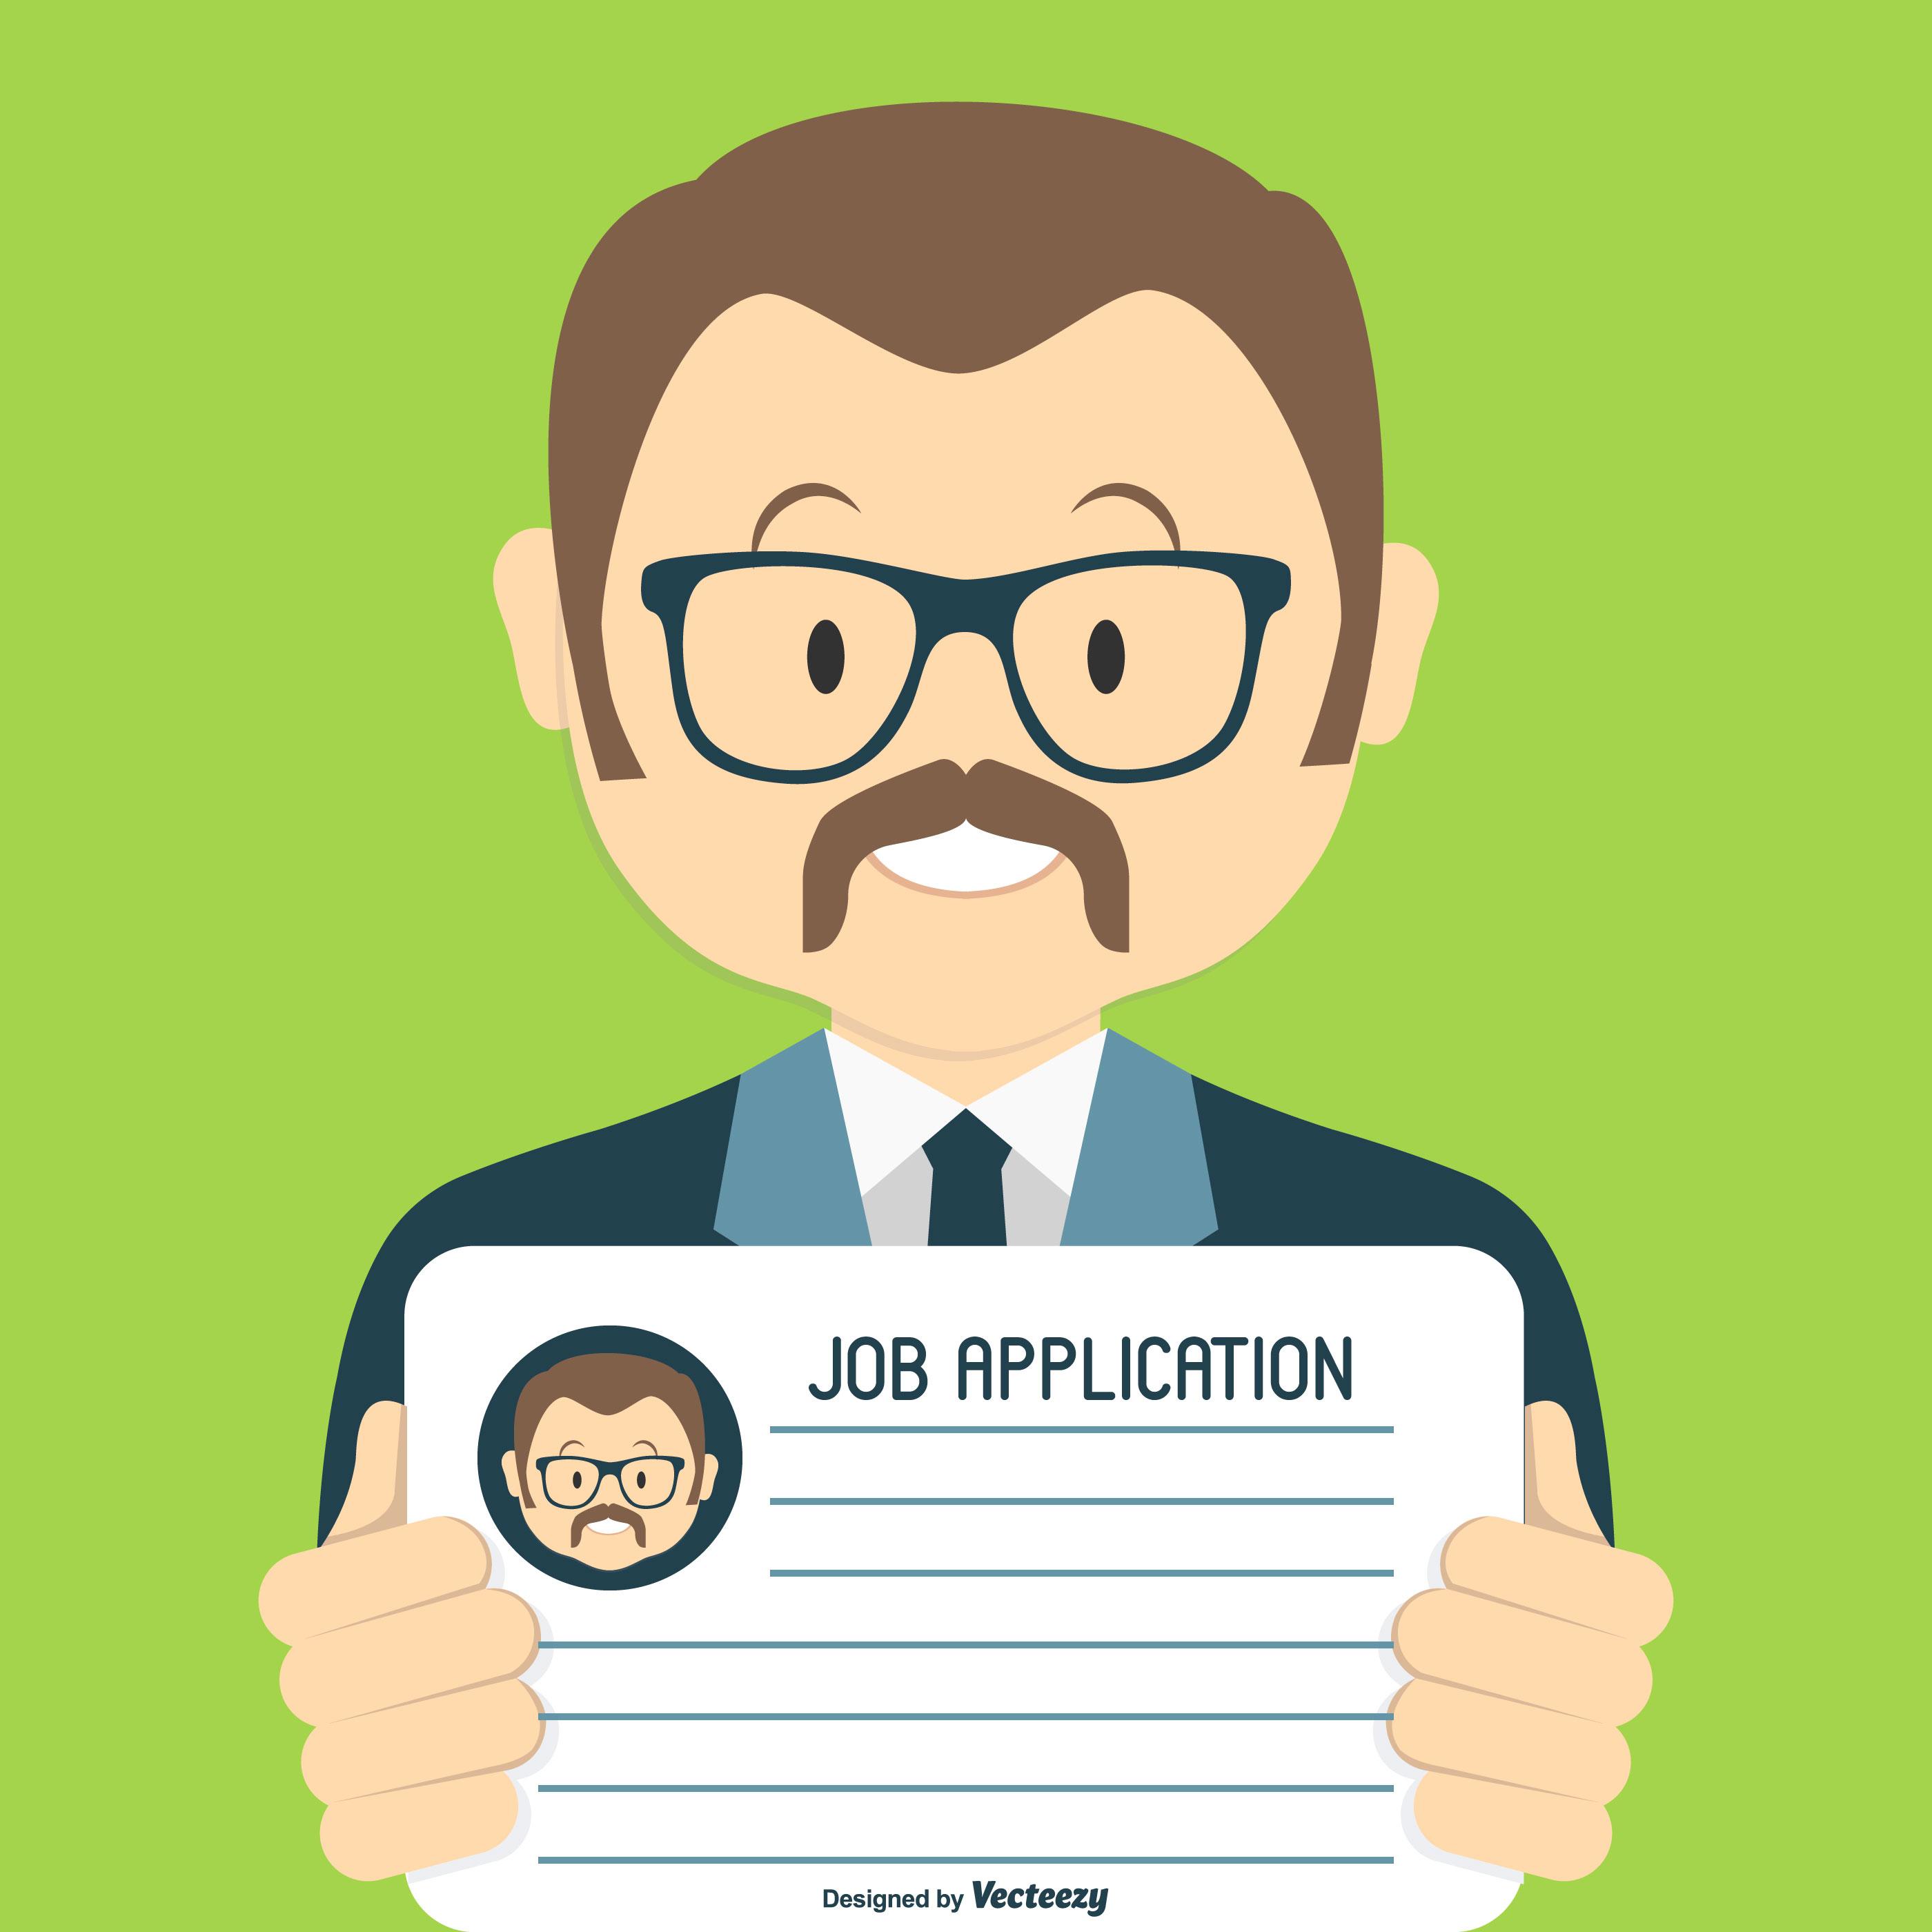 job application free vector art